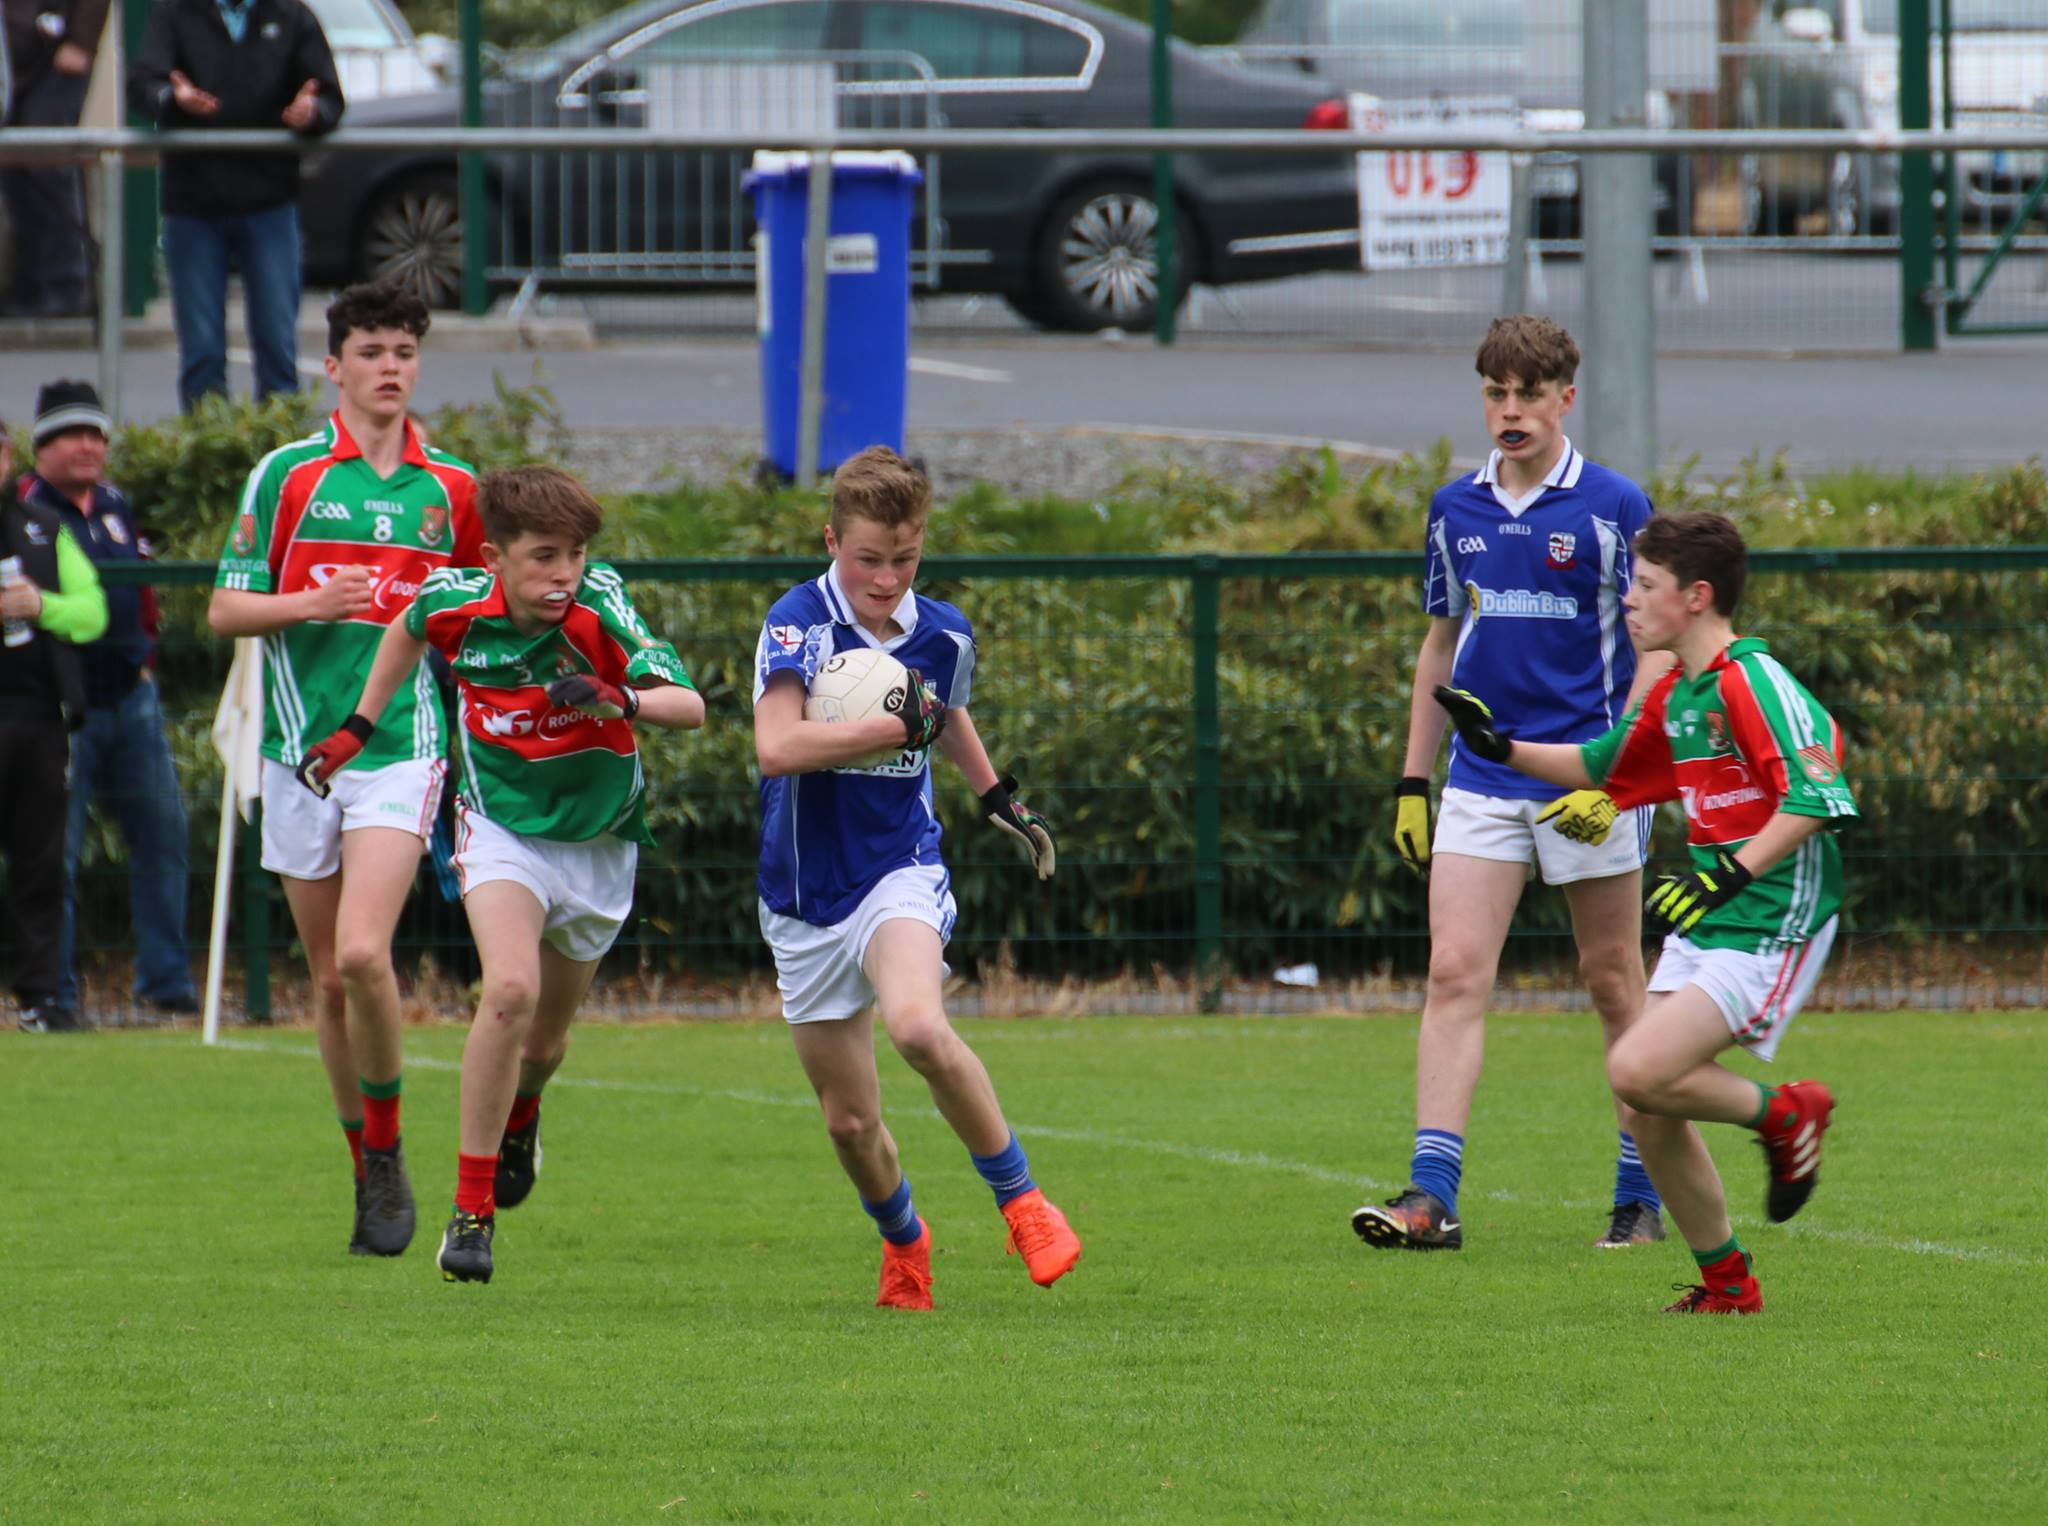 Suncroft v Celbridge Feile A Shield 24